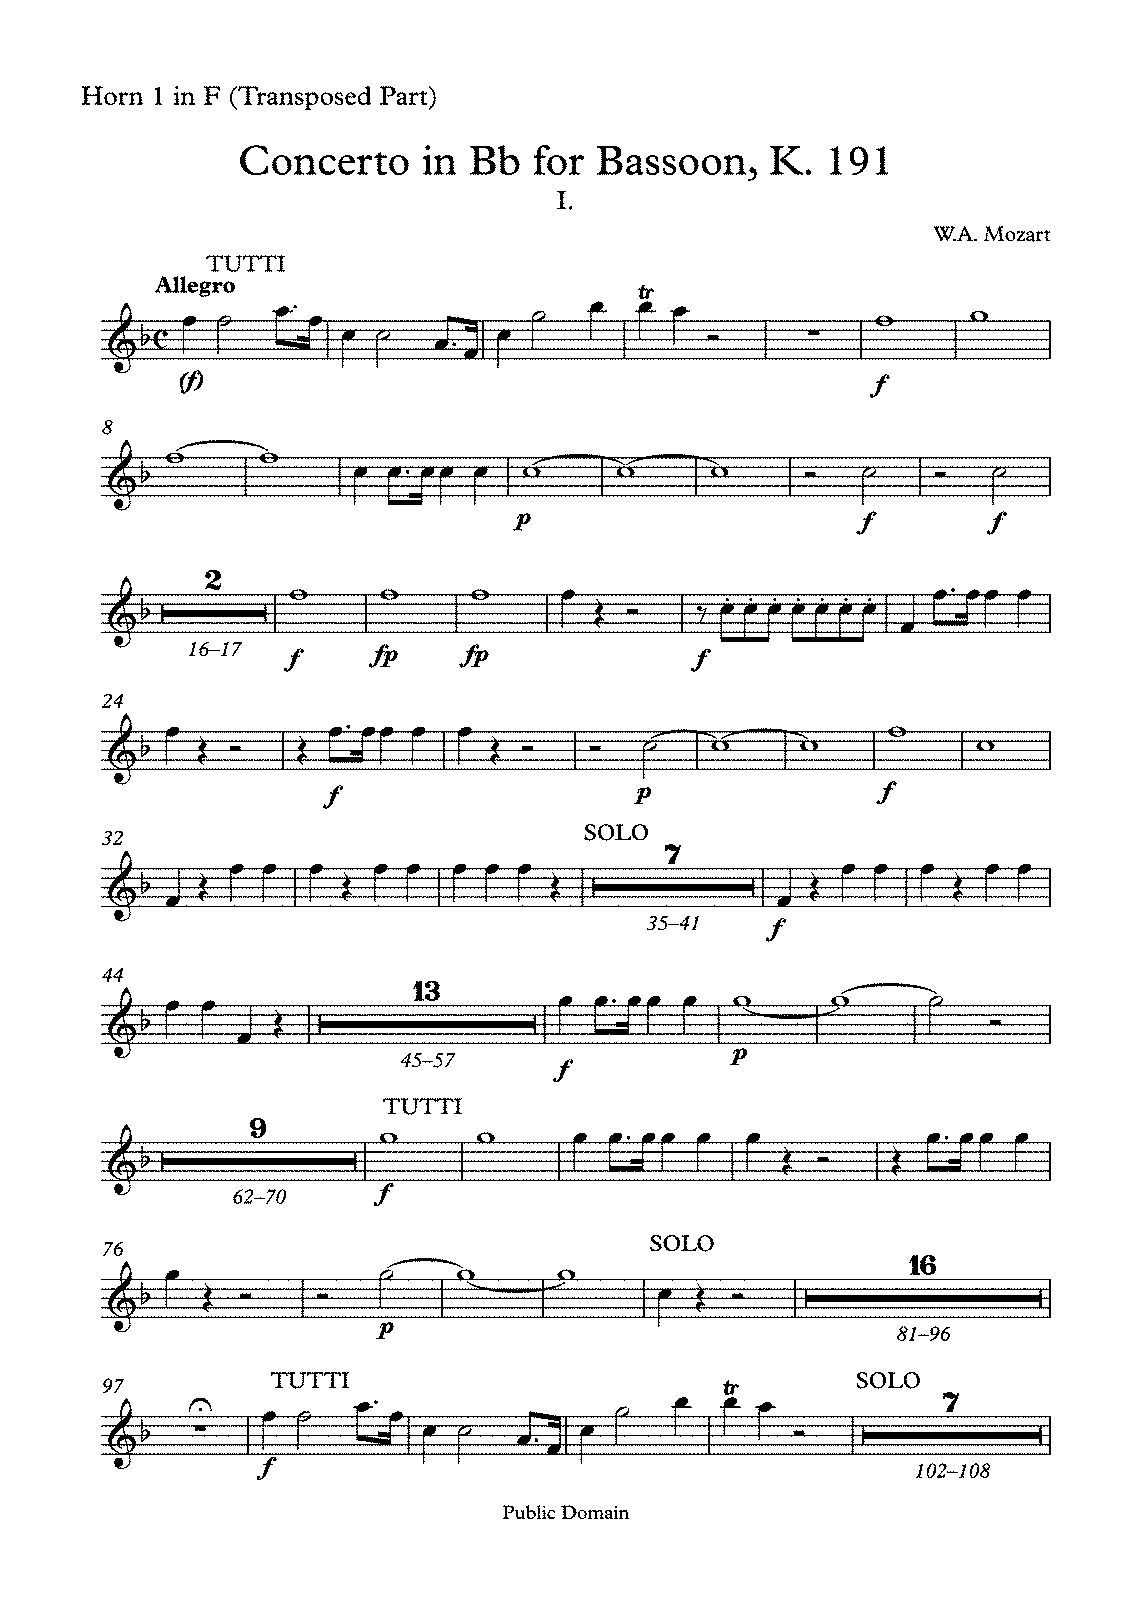 PMLP04337-Concerto in Bb for Bassoon, K 191 - Horn 1 in F (Transposed Part).pdf